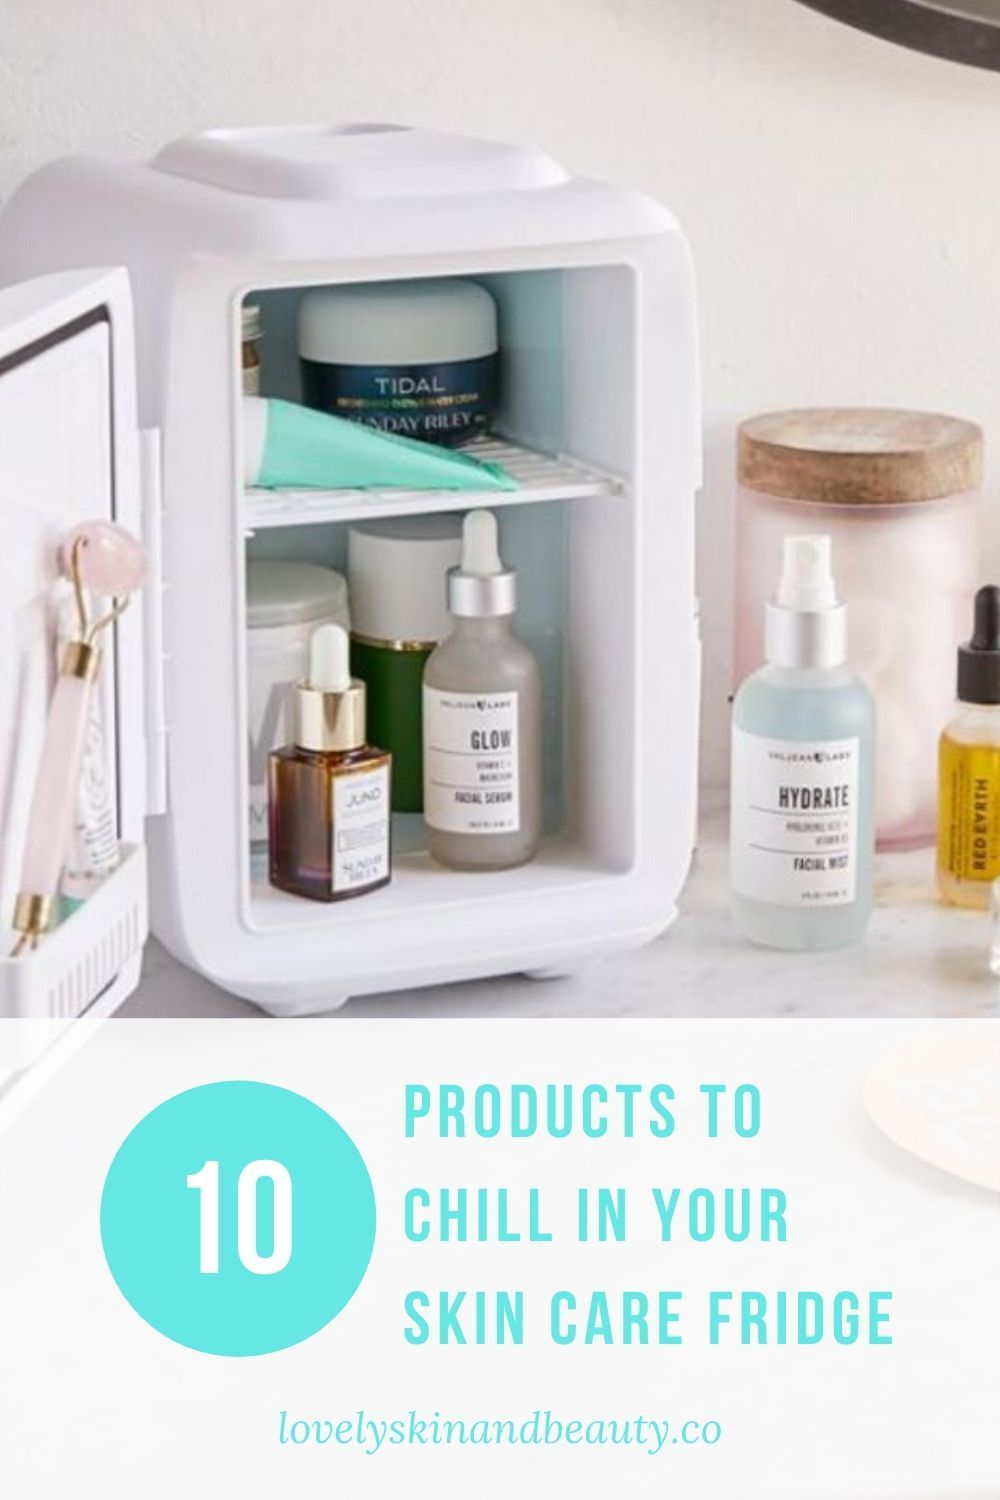 10 Products To Chill In Your Skin Care Fridge In 2020 Diy Skin Care Recipes Skin Care Body Skin Care